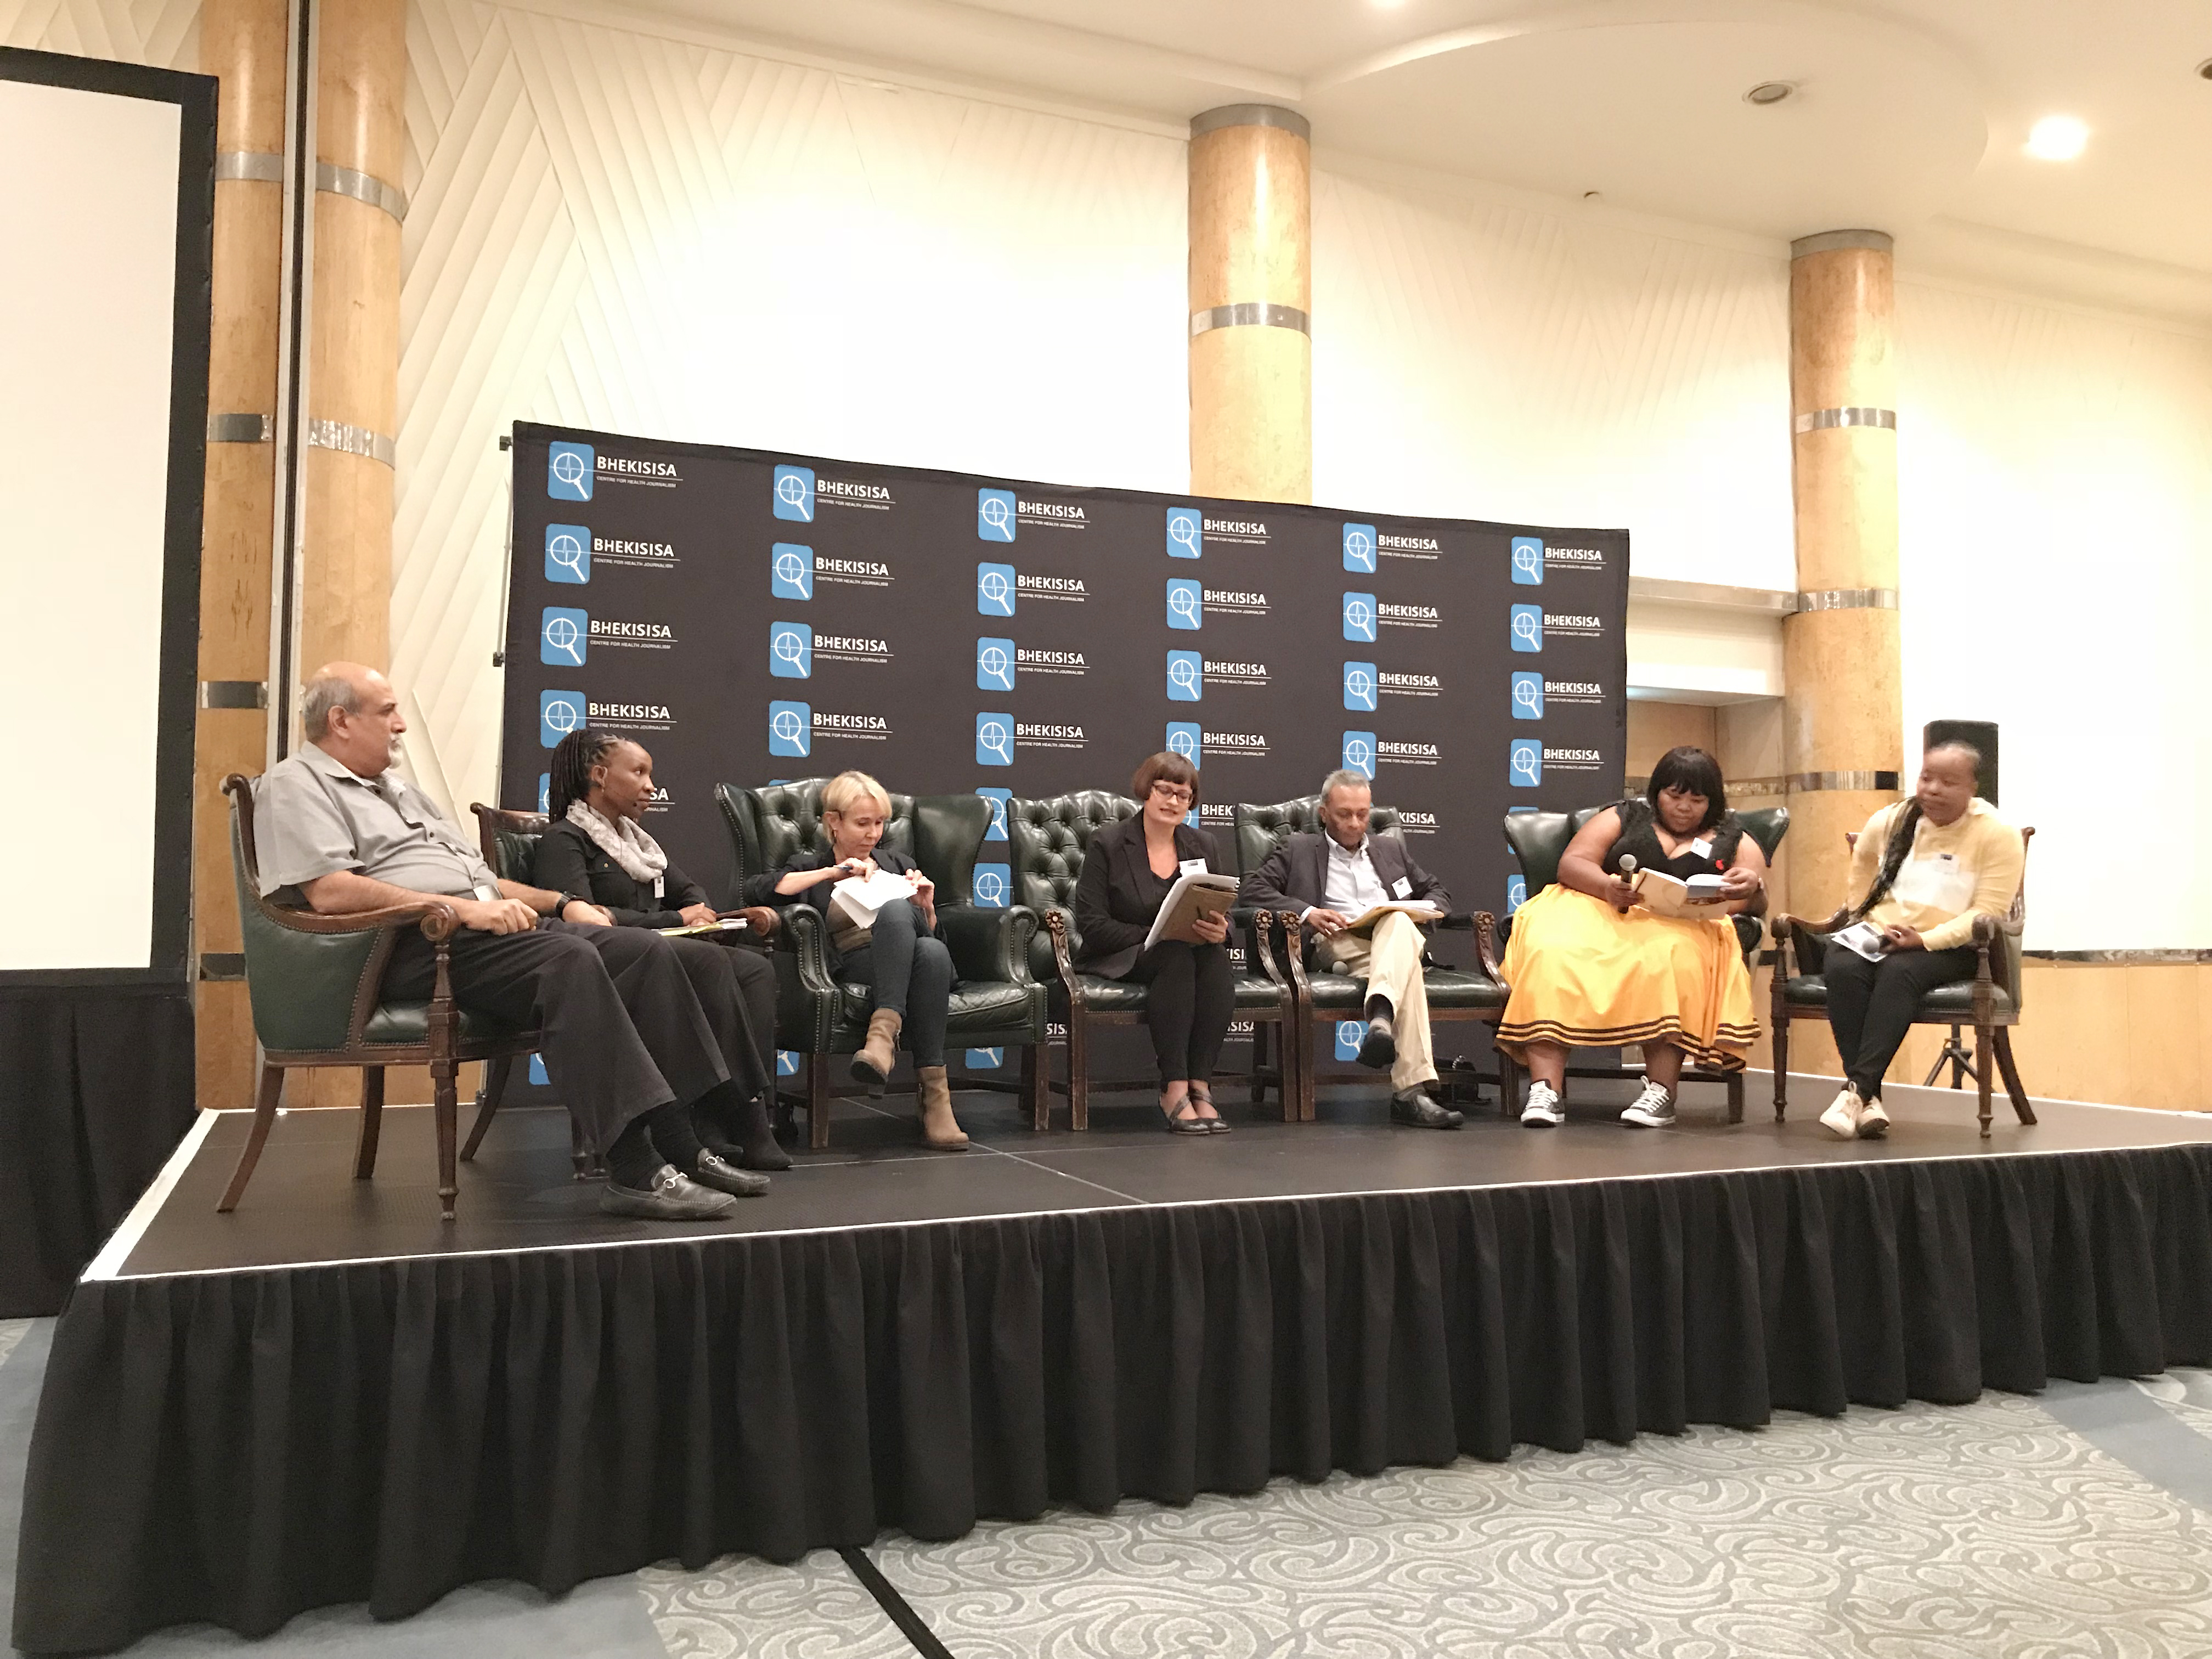 Bhekisisa Policy Dialogue on age disparate sex